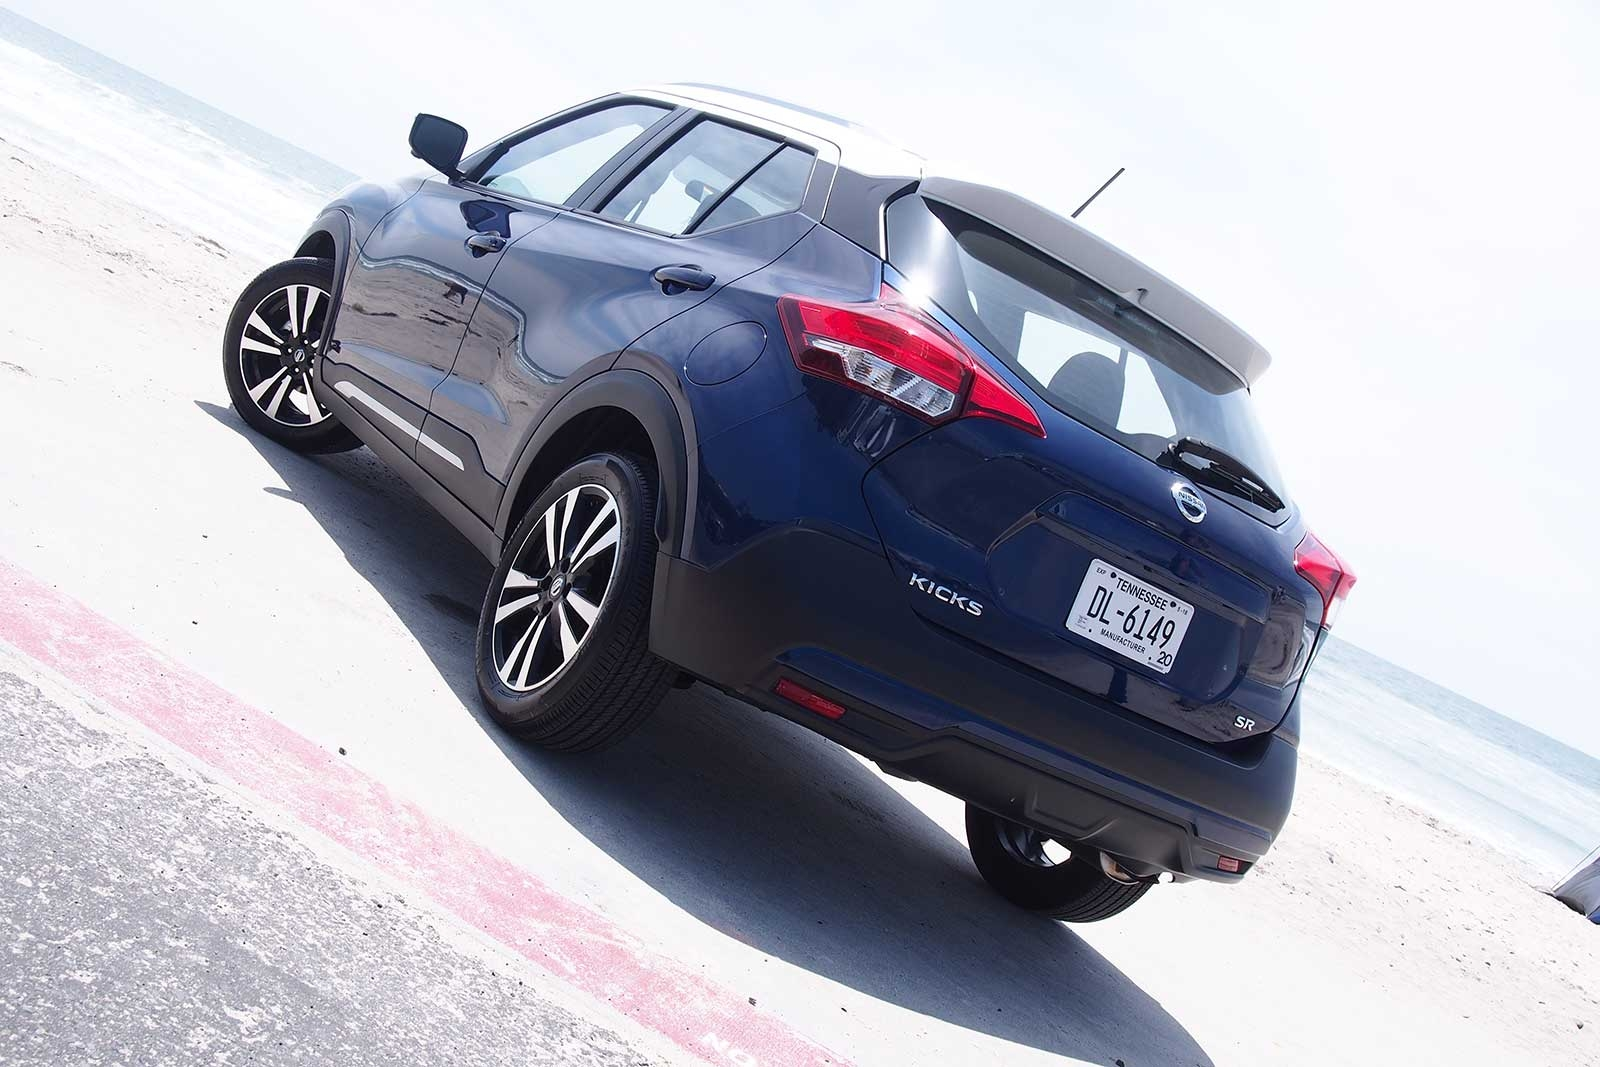 2018 Nissan Kicks Review - AutoGuide.com